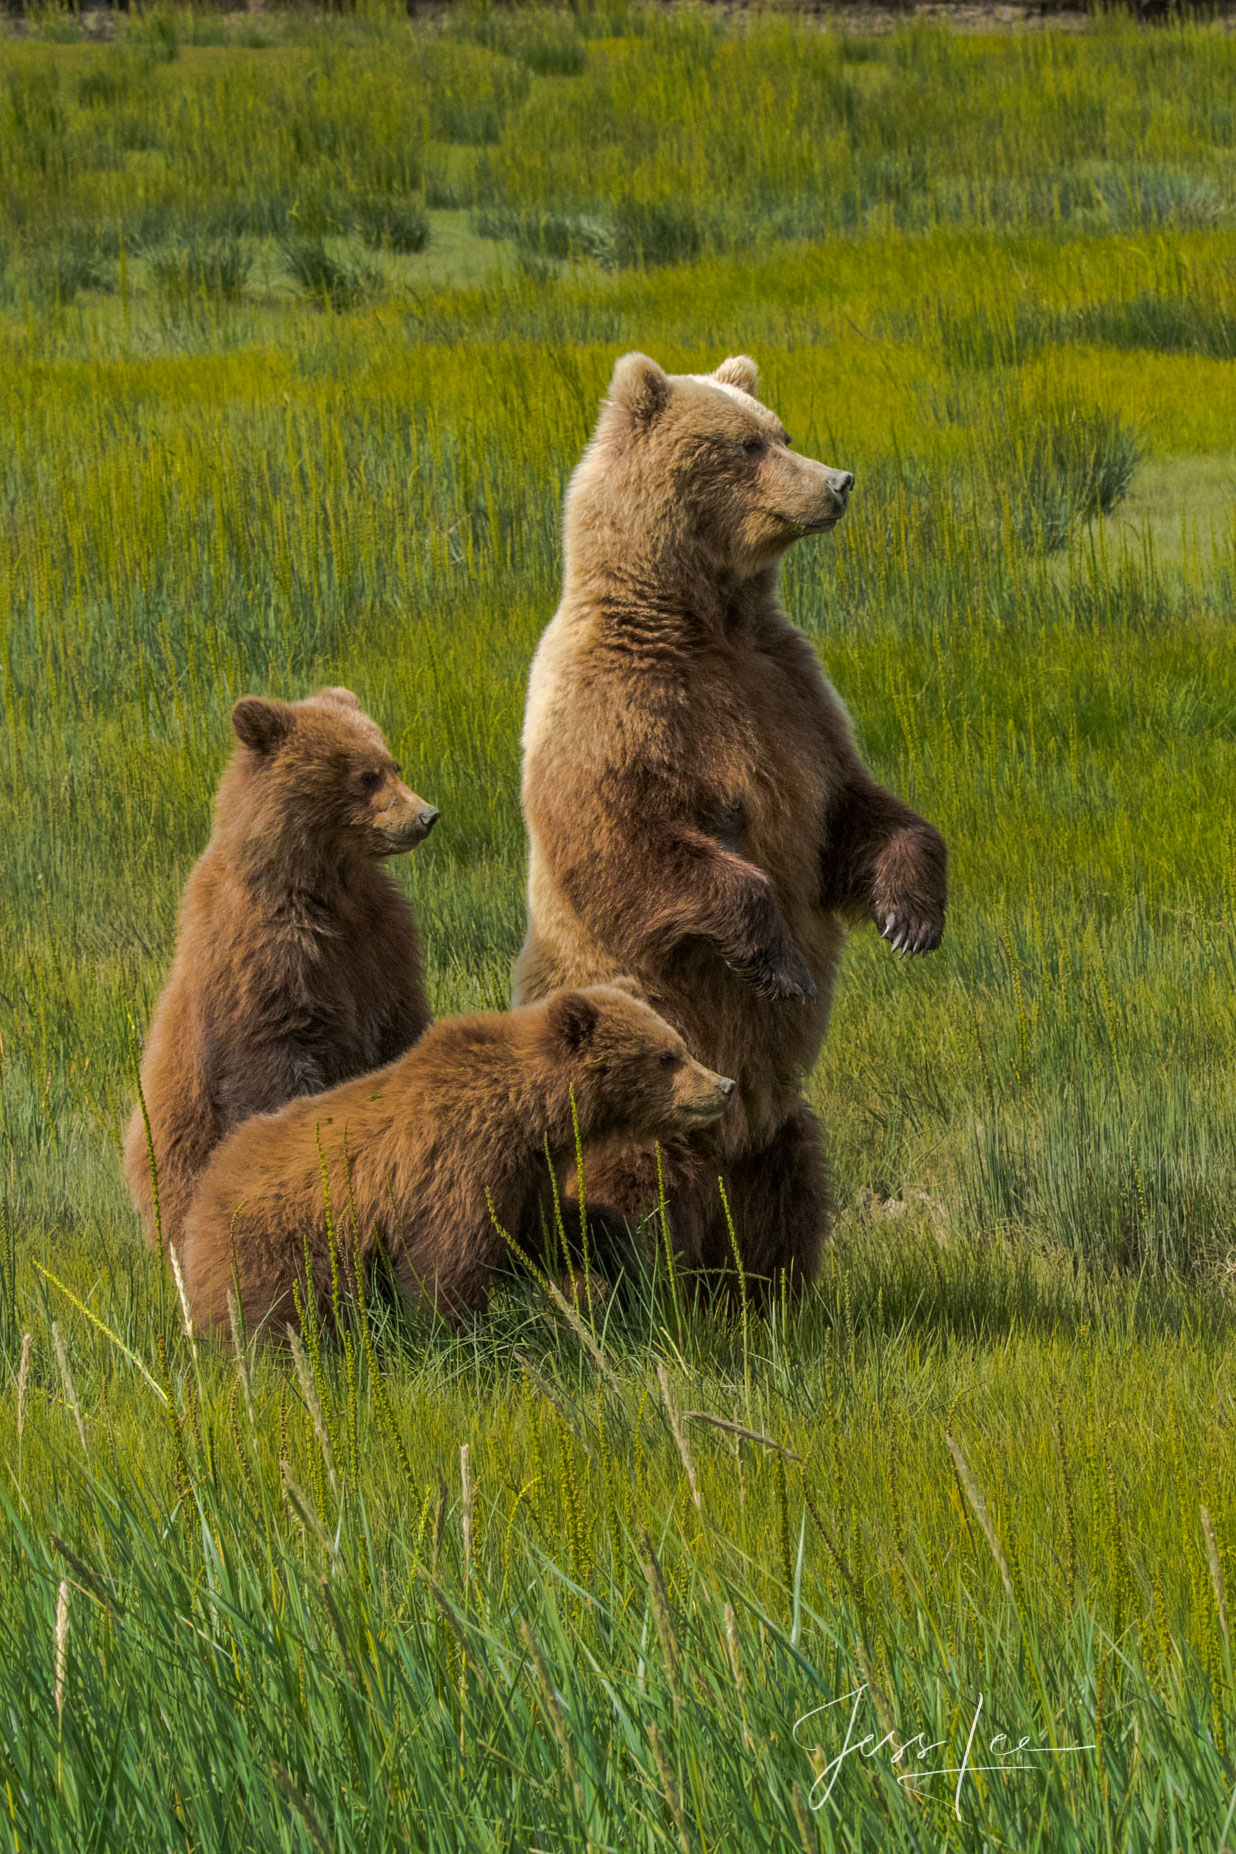 grizzly, beare, bears, brown bear, cubs, wildlife photographer famous, best, , Grizzly Bear Photograph, Grizzly bear picture, Grizzly bear print, photo